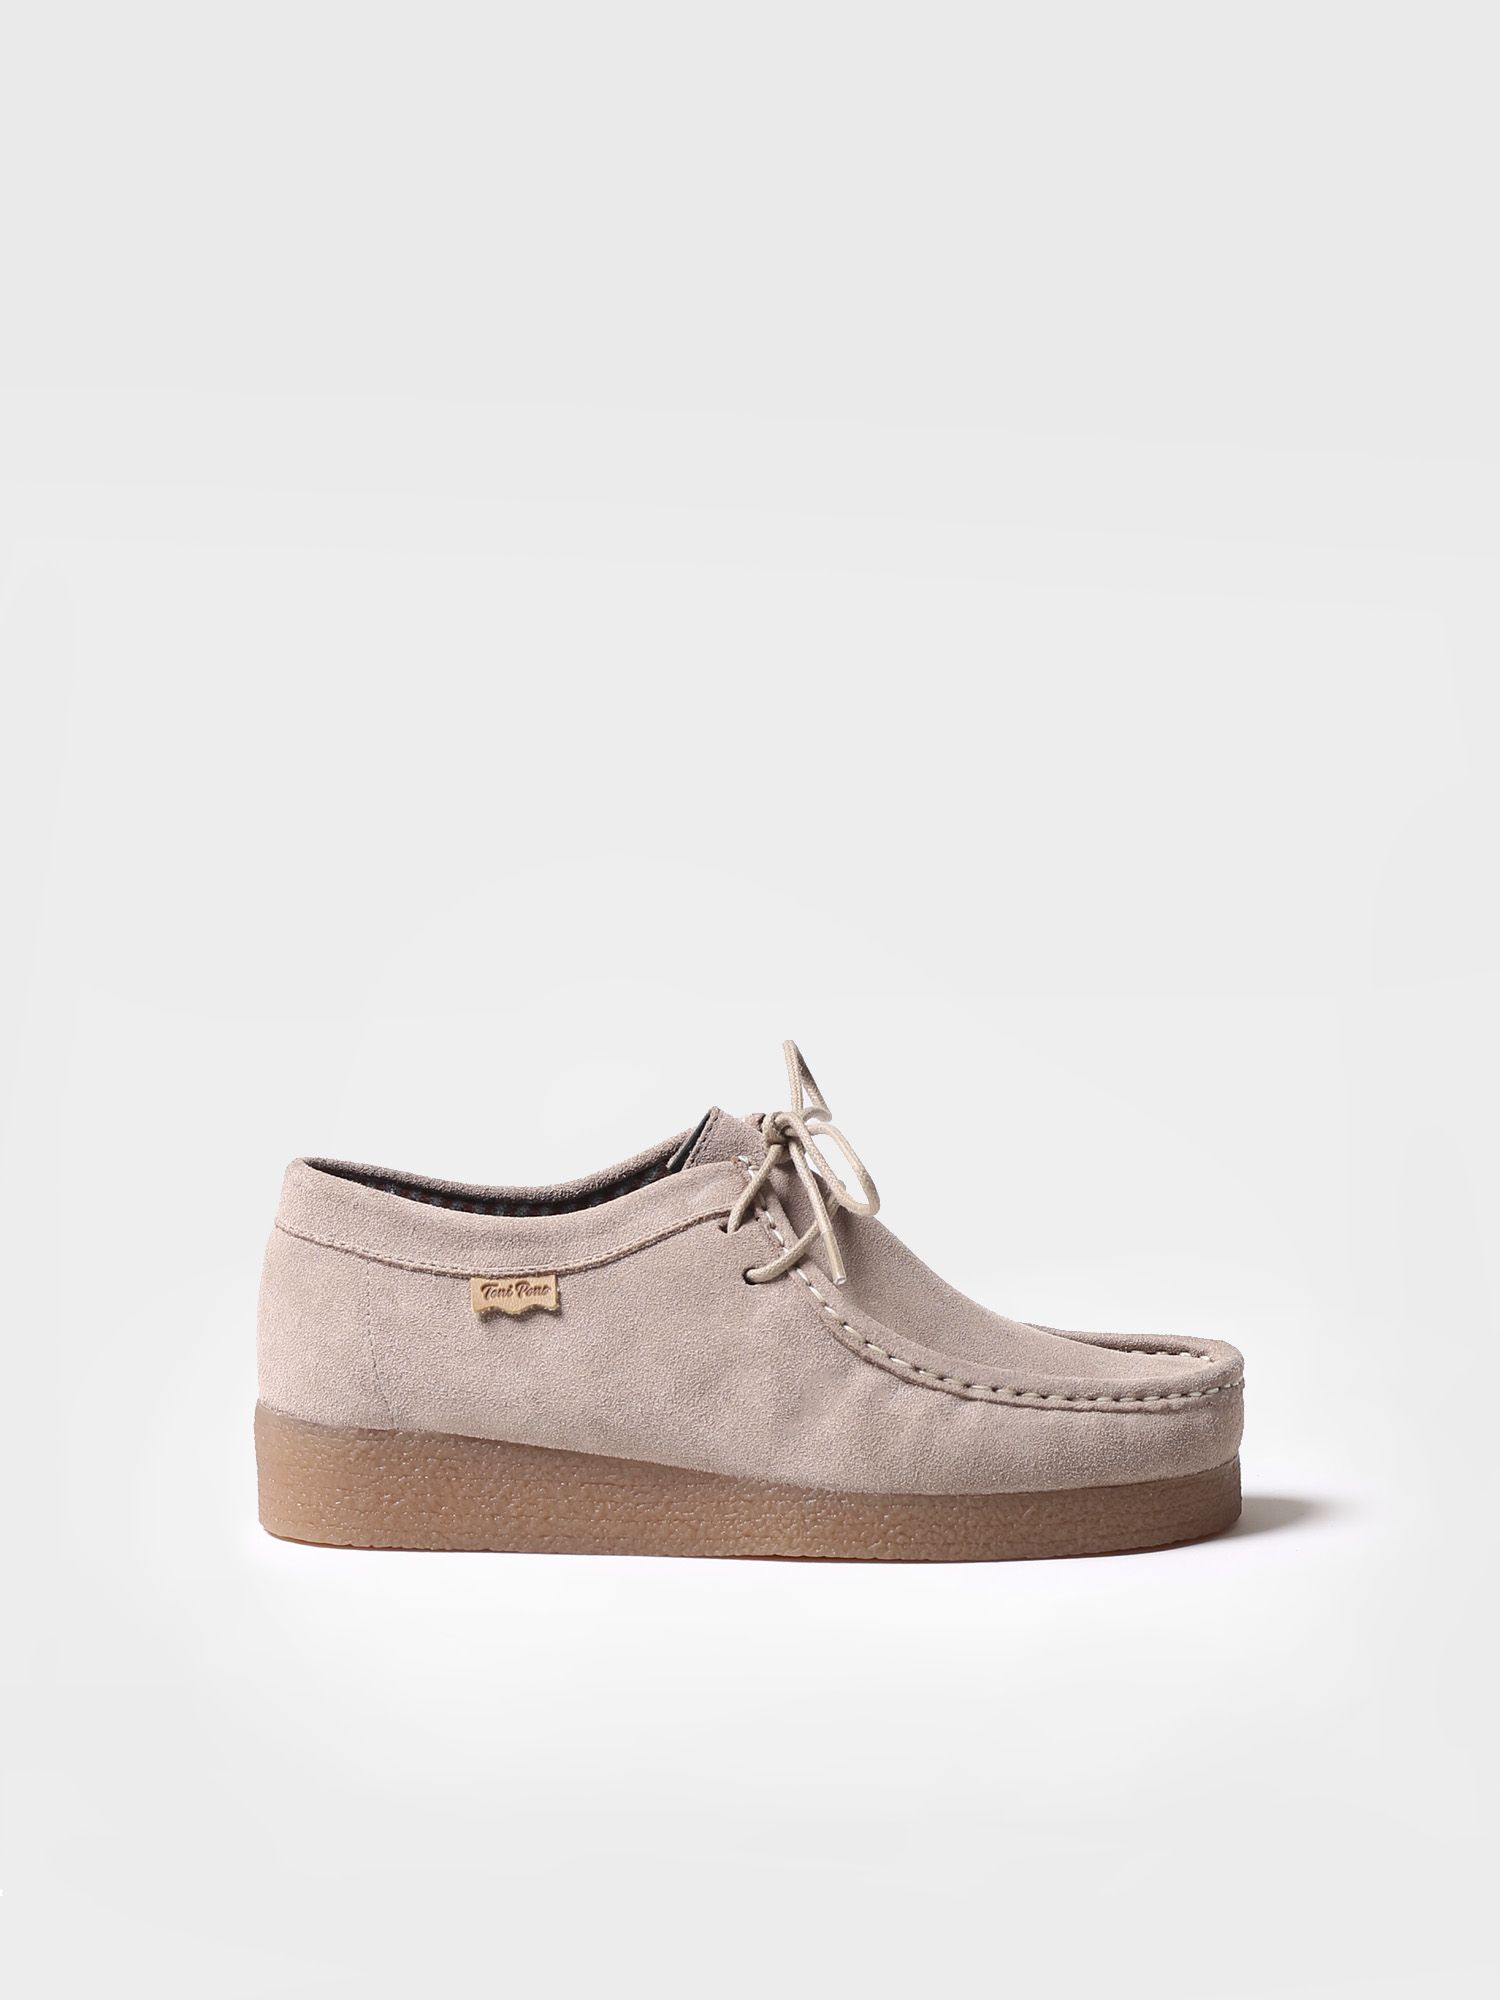 Shoe for woman made of suede - KETA-SY